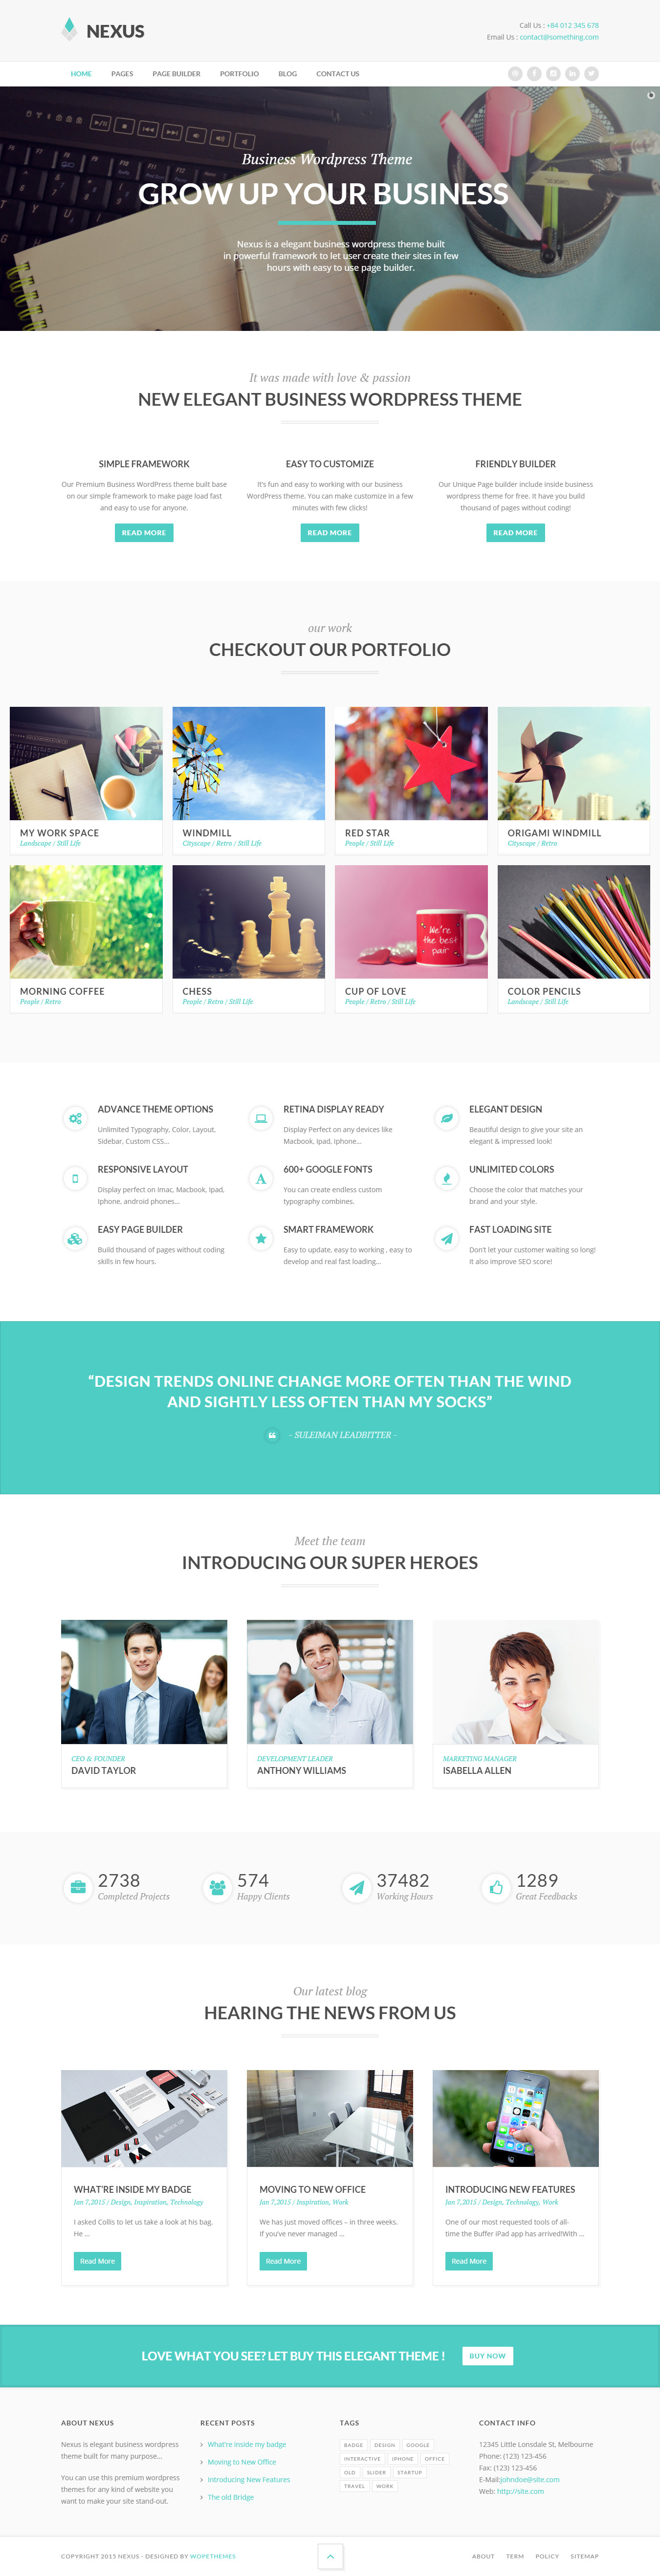 Nexus - Elegant Business WordPress Theme by wopethemes | ThemeForest